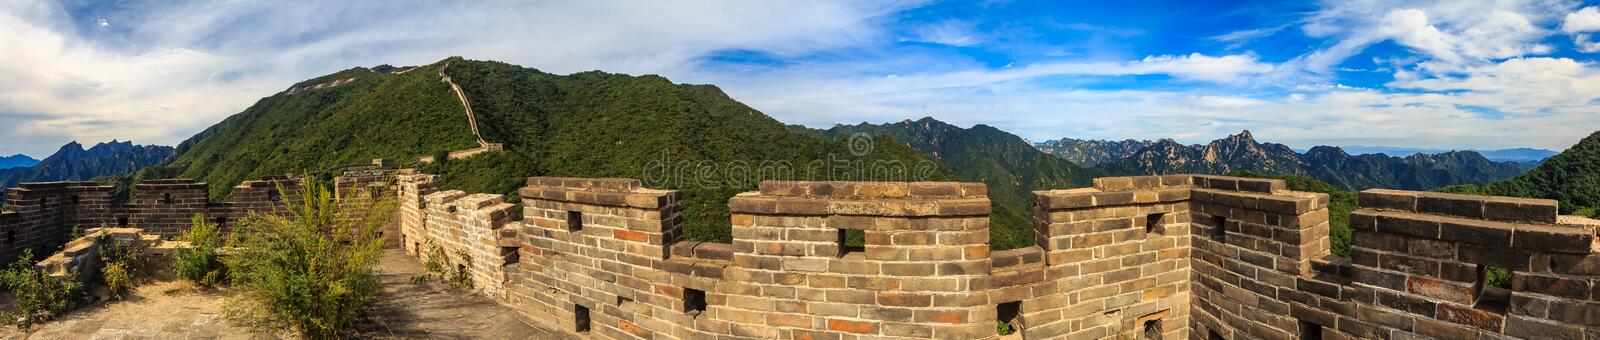 Great Wall of China, in the Mutianyu village, one of remote parts of the Great Wall near Beijing. Panoramic view of the Great Wall of China, in the Mutianyu royalty free stock images